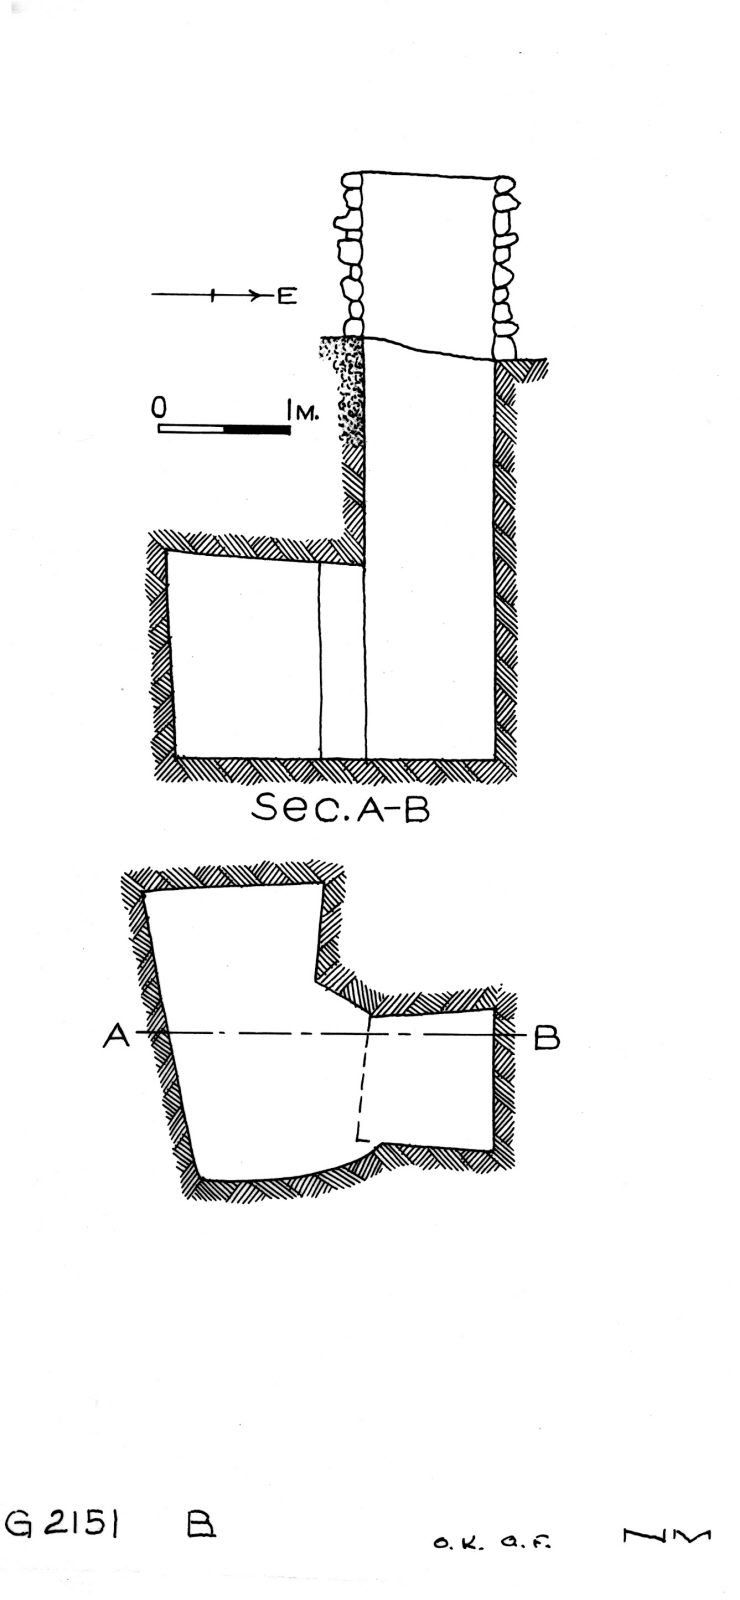 Maps and plans: G 2151, Shaft B